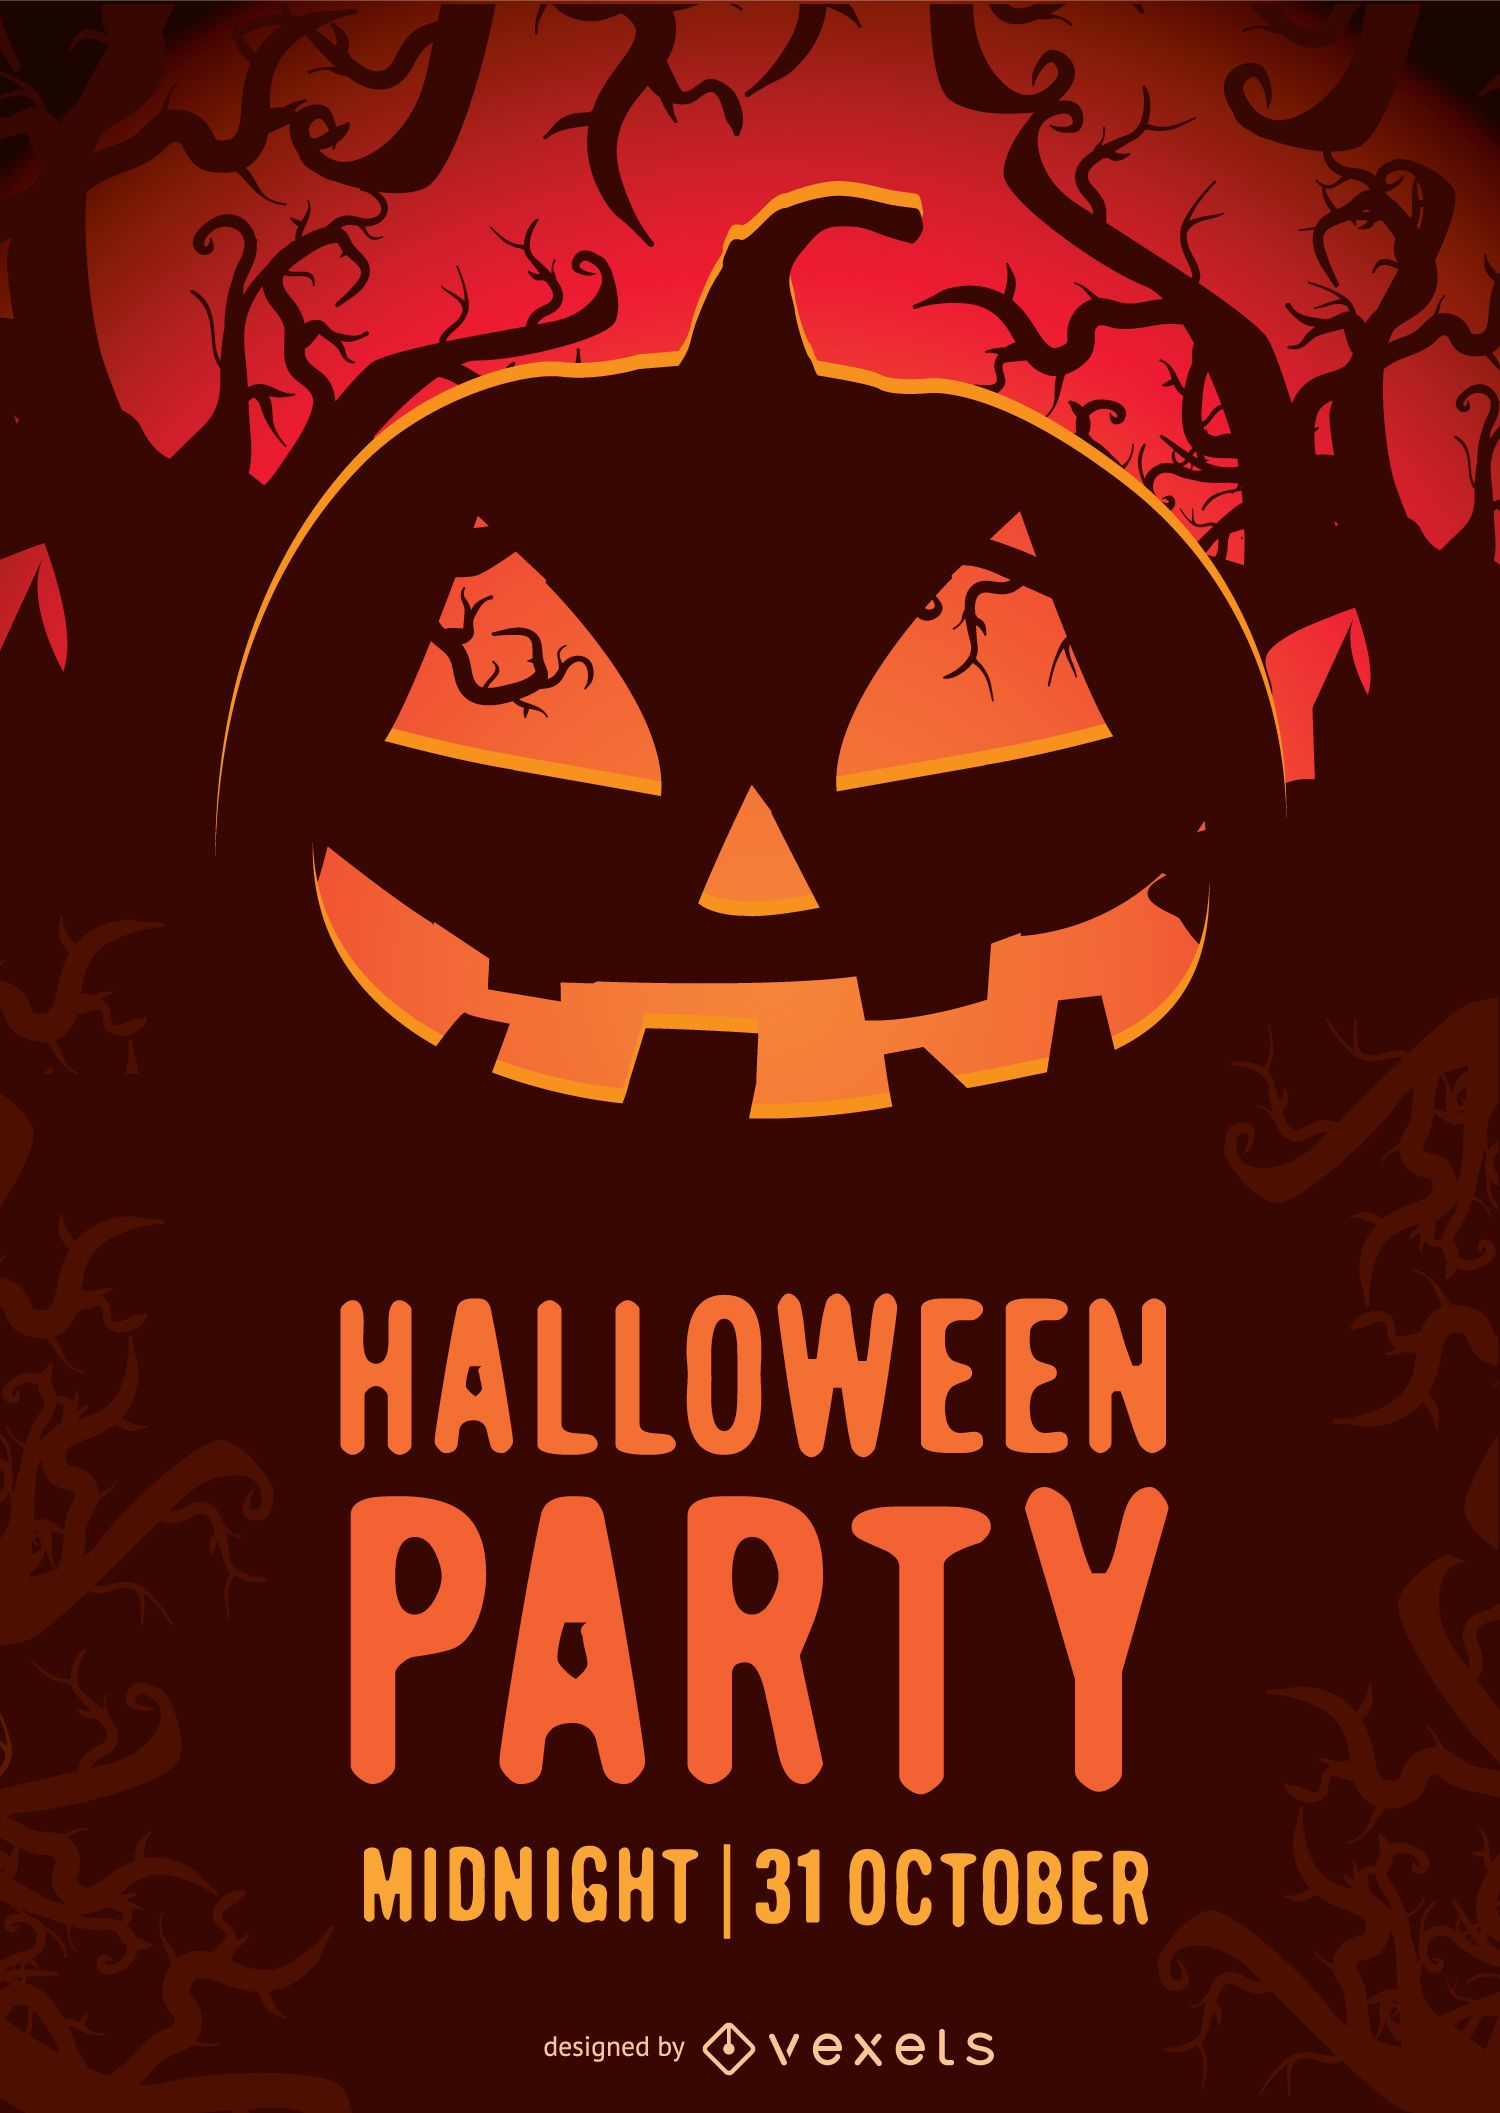 halloween party poster vector download rh vexels com halloween party poster 2018 halloween party poster template for kids